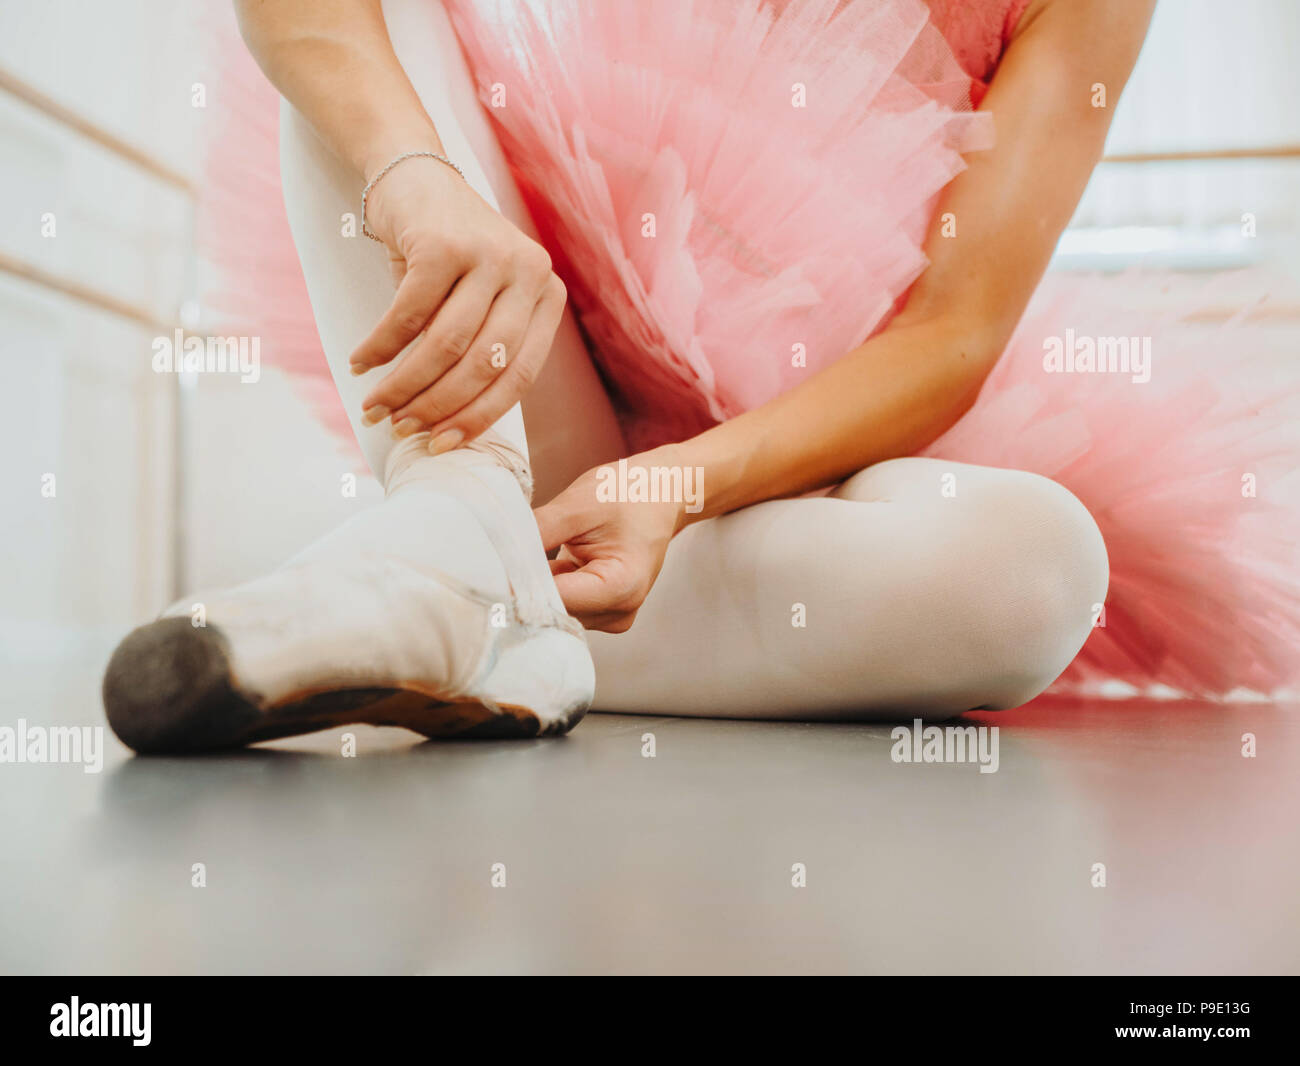 Young ballerina in pink tutu costume wraps white silk ribbons of soft top ballet shoes pointe and ties them up. Woman preparing for dance training lessons in gym. - Stock Image